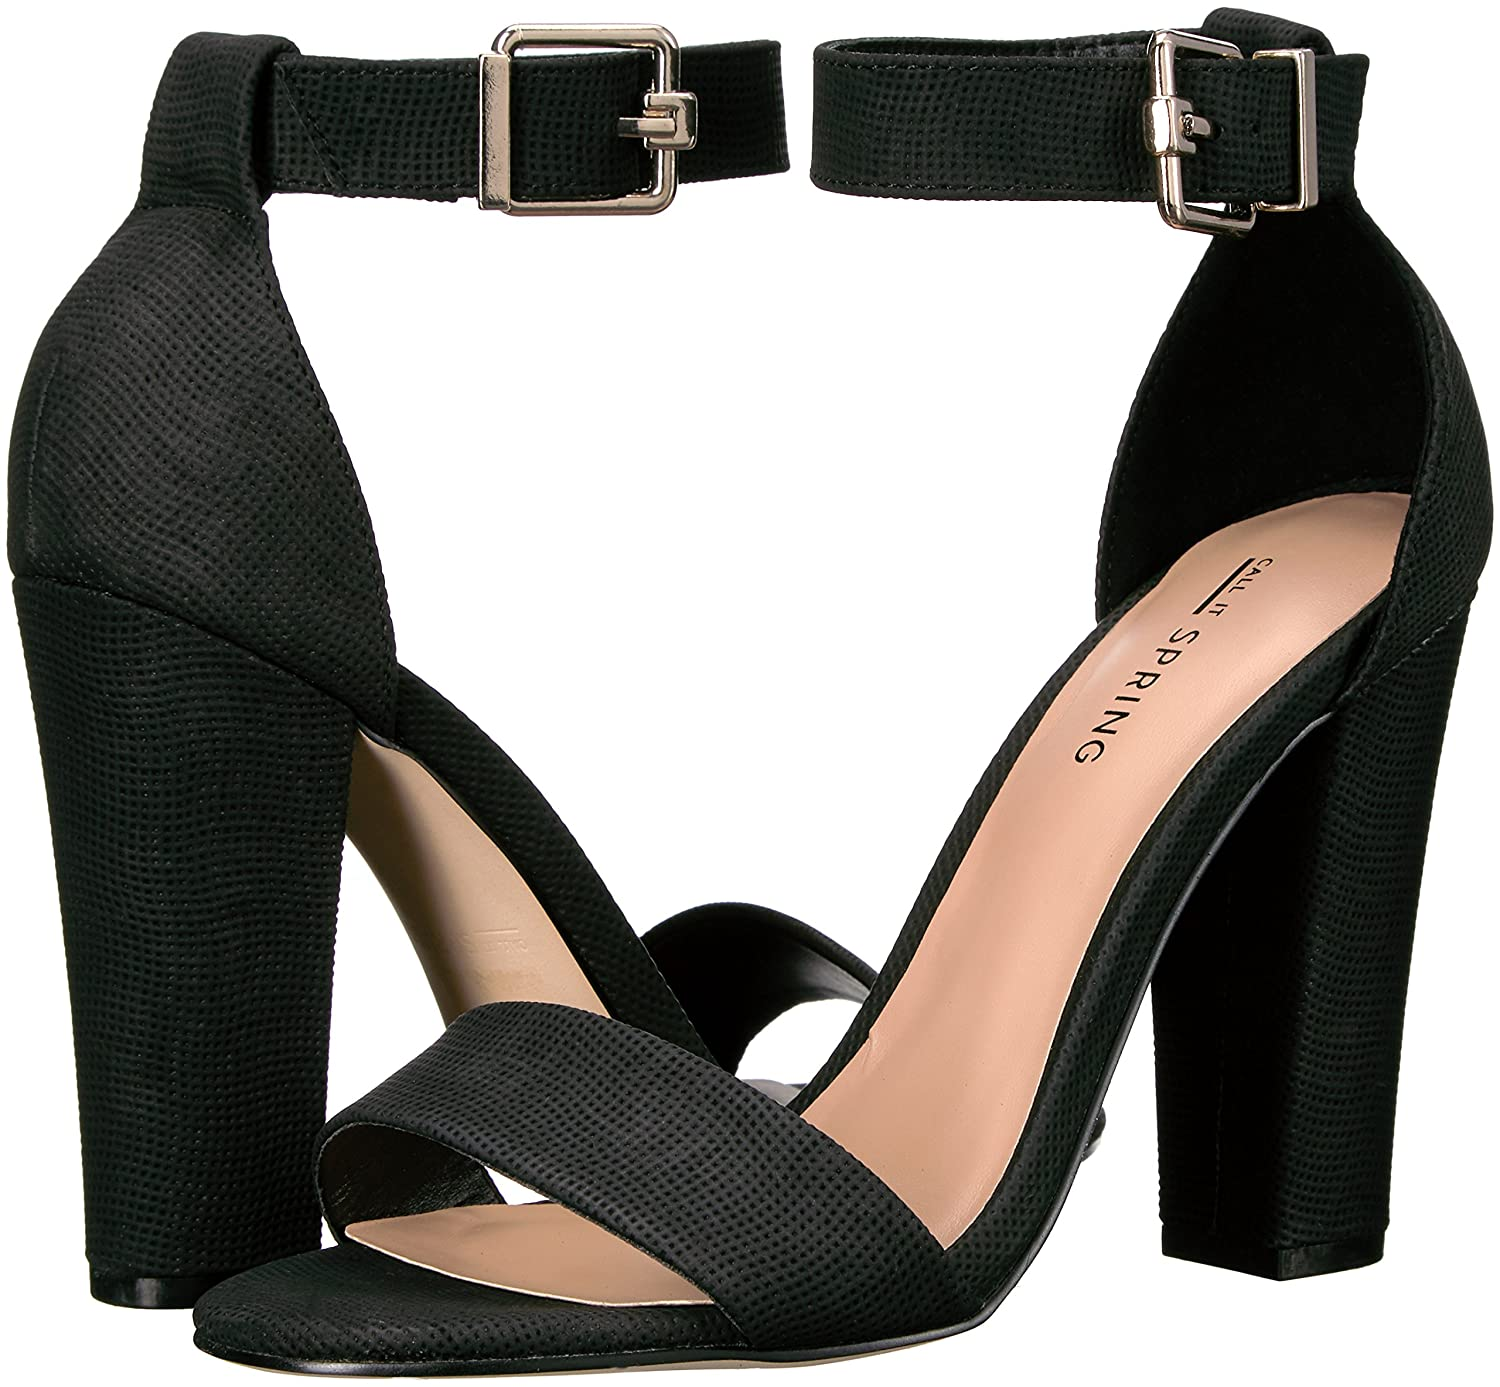 Call It Spring Arther Mujer US 8.5 Negro Sandalia: Amazon.es: Zapatos y complementos